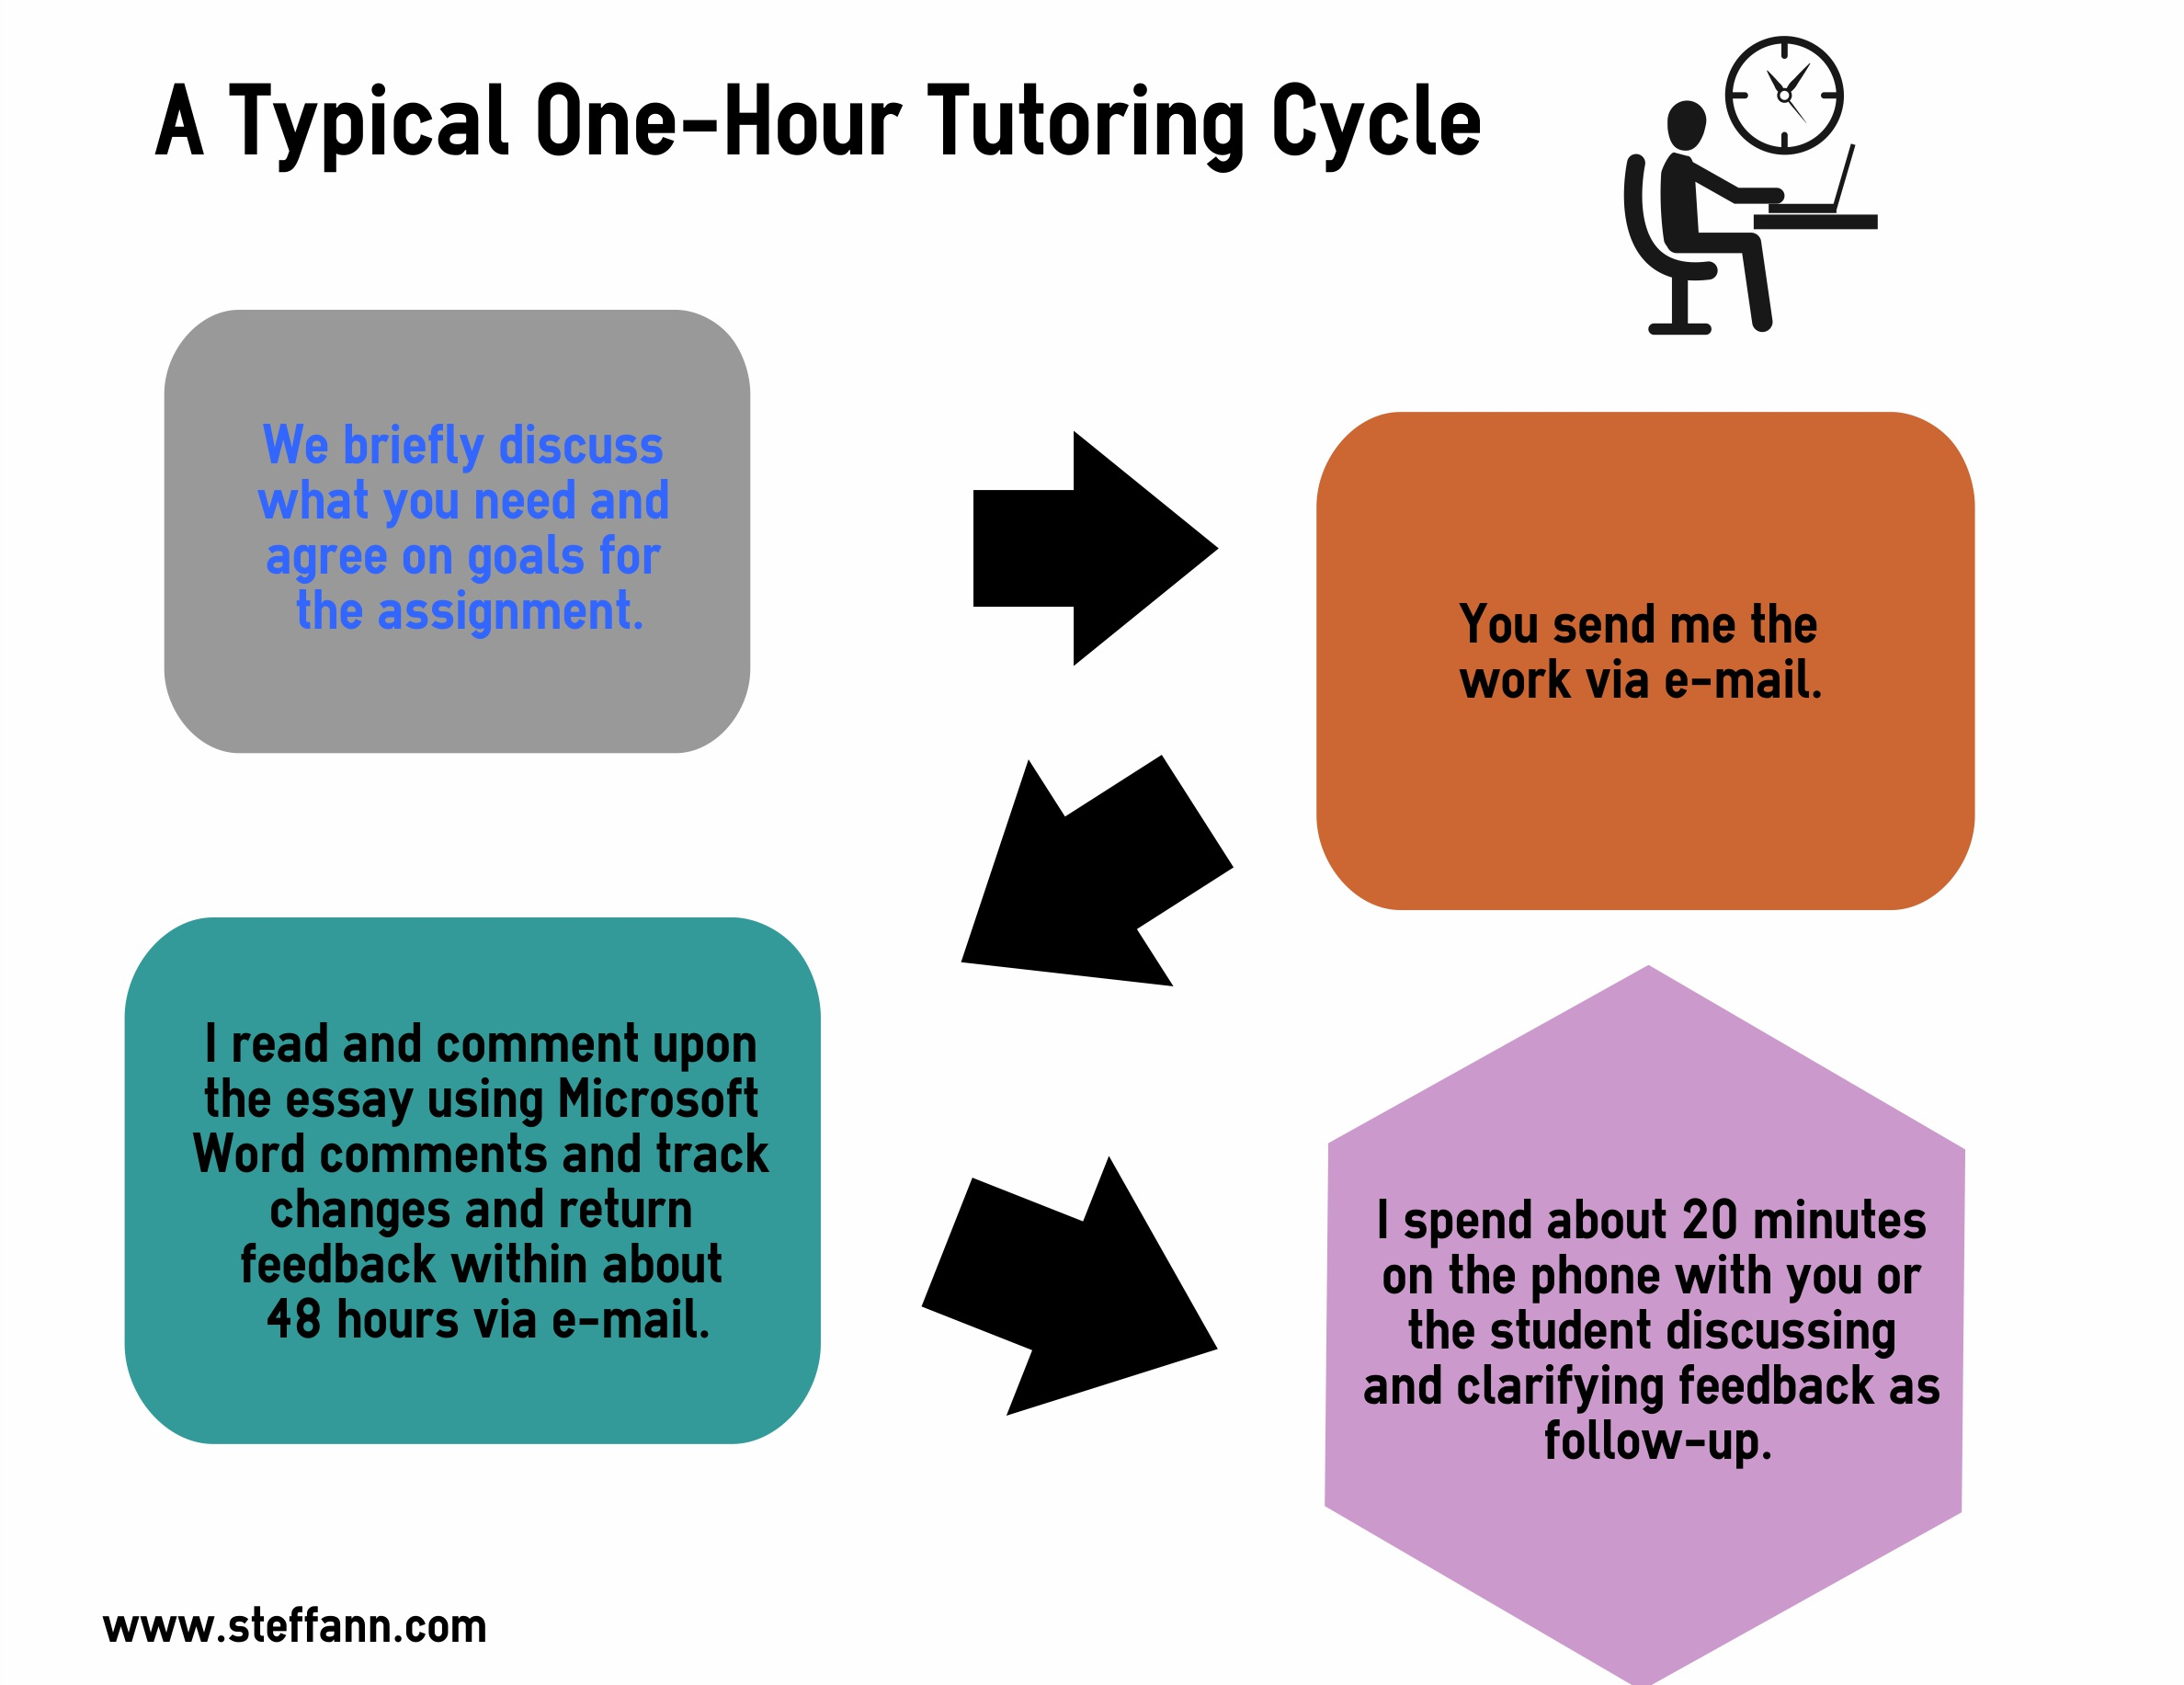 online writing help stuff from online writing help click here for an example of what the process would be for an hour s worth of tutoring all done via e mail and phone from beginning to end